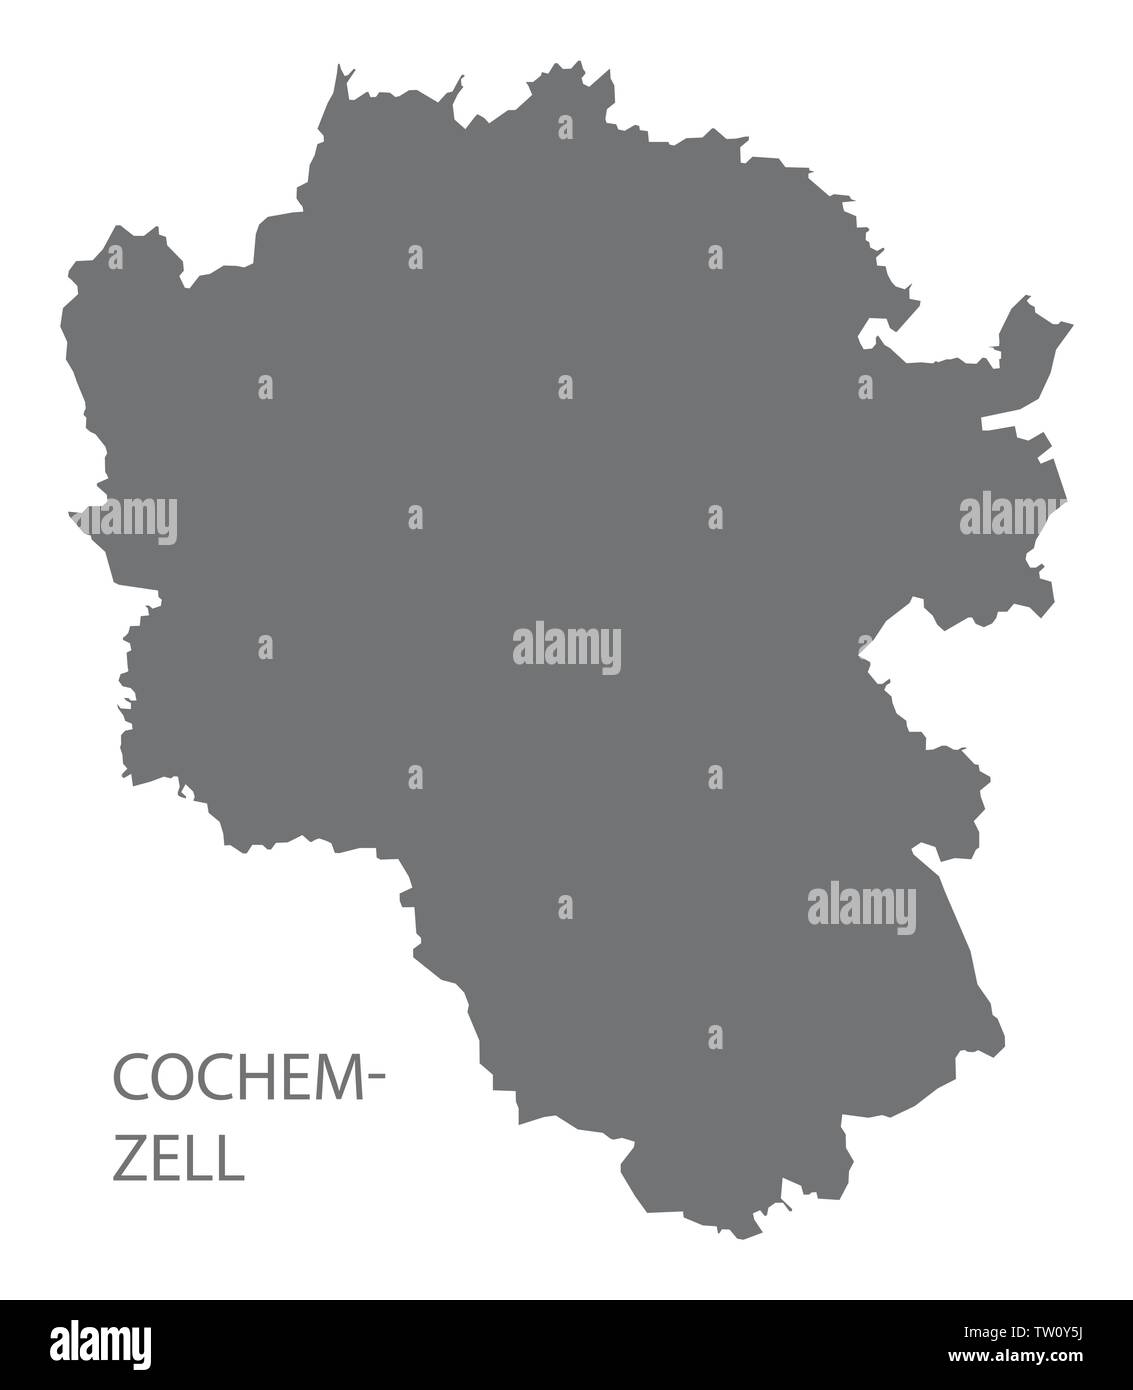 Map Of Zell Germany.Geography Travel Germany Rhineland Palatinate Zell Stock Photos